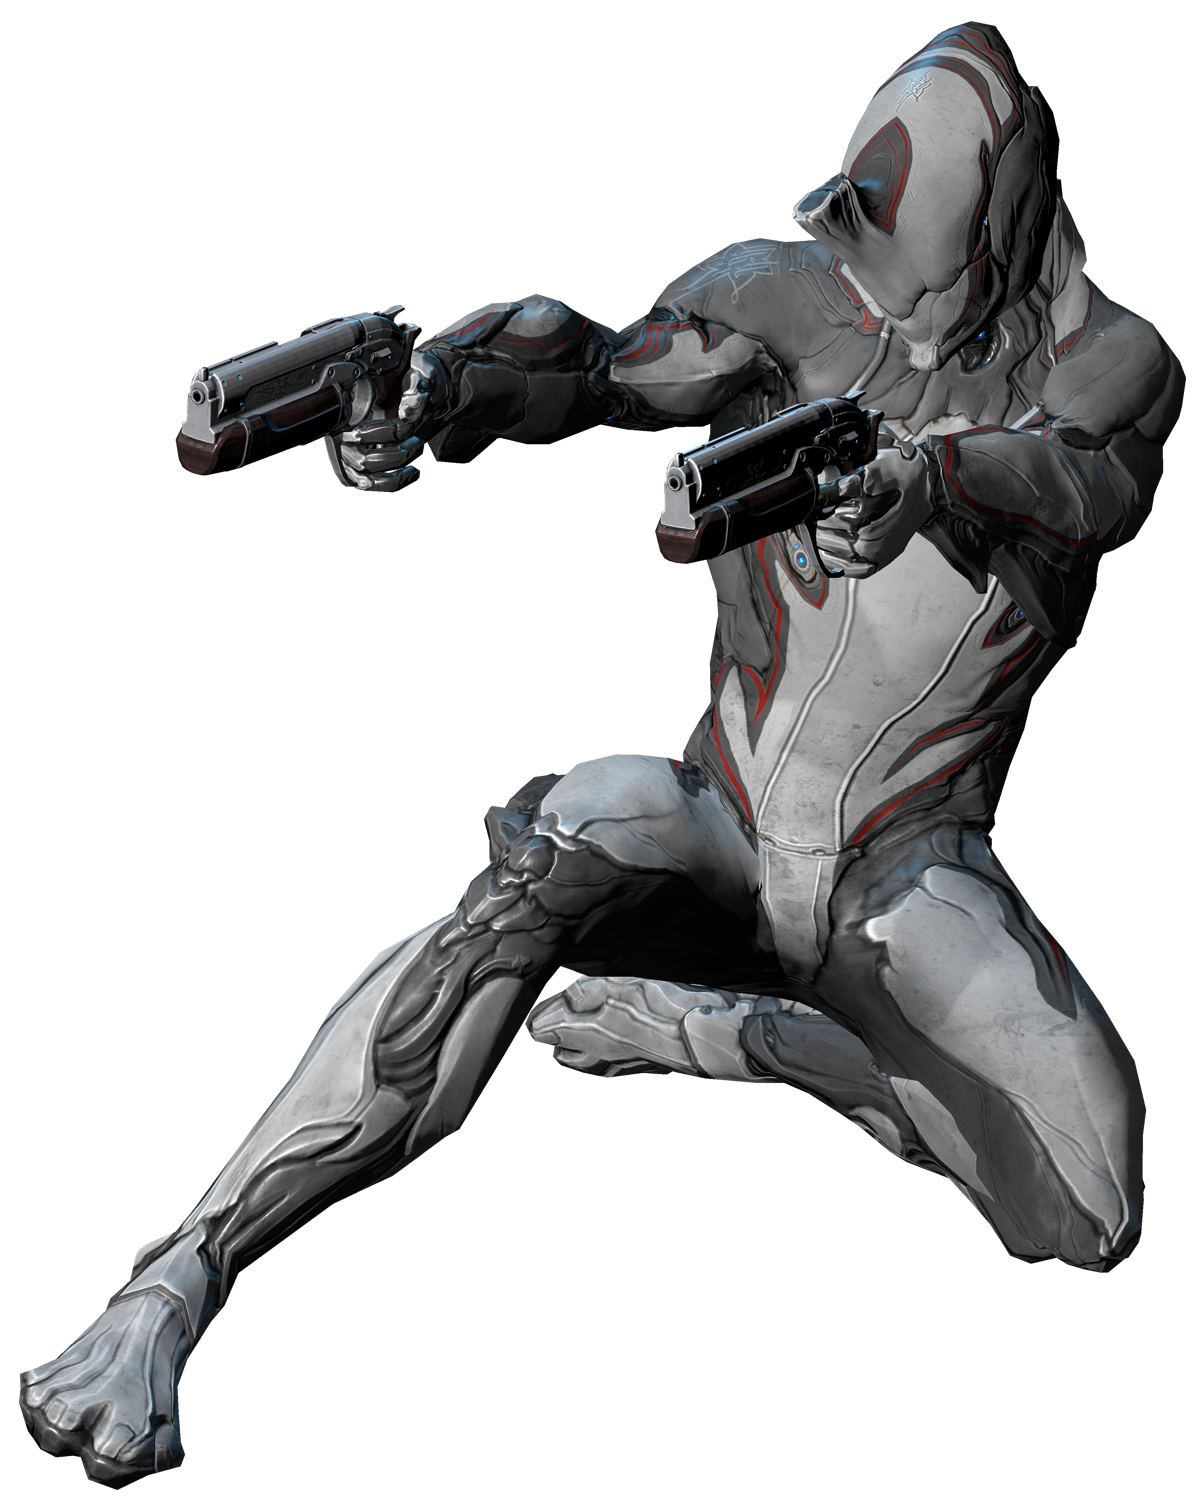 Warframe drawing excalibur proto armor. Index of bdh fichiers